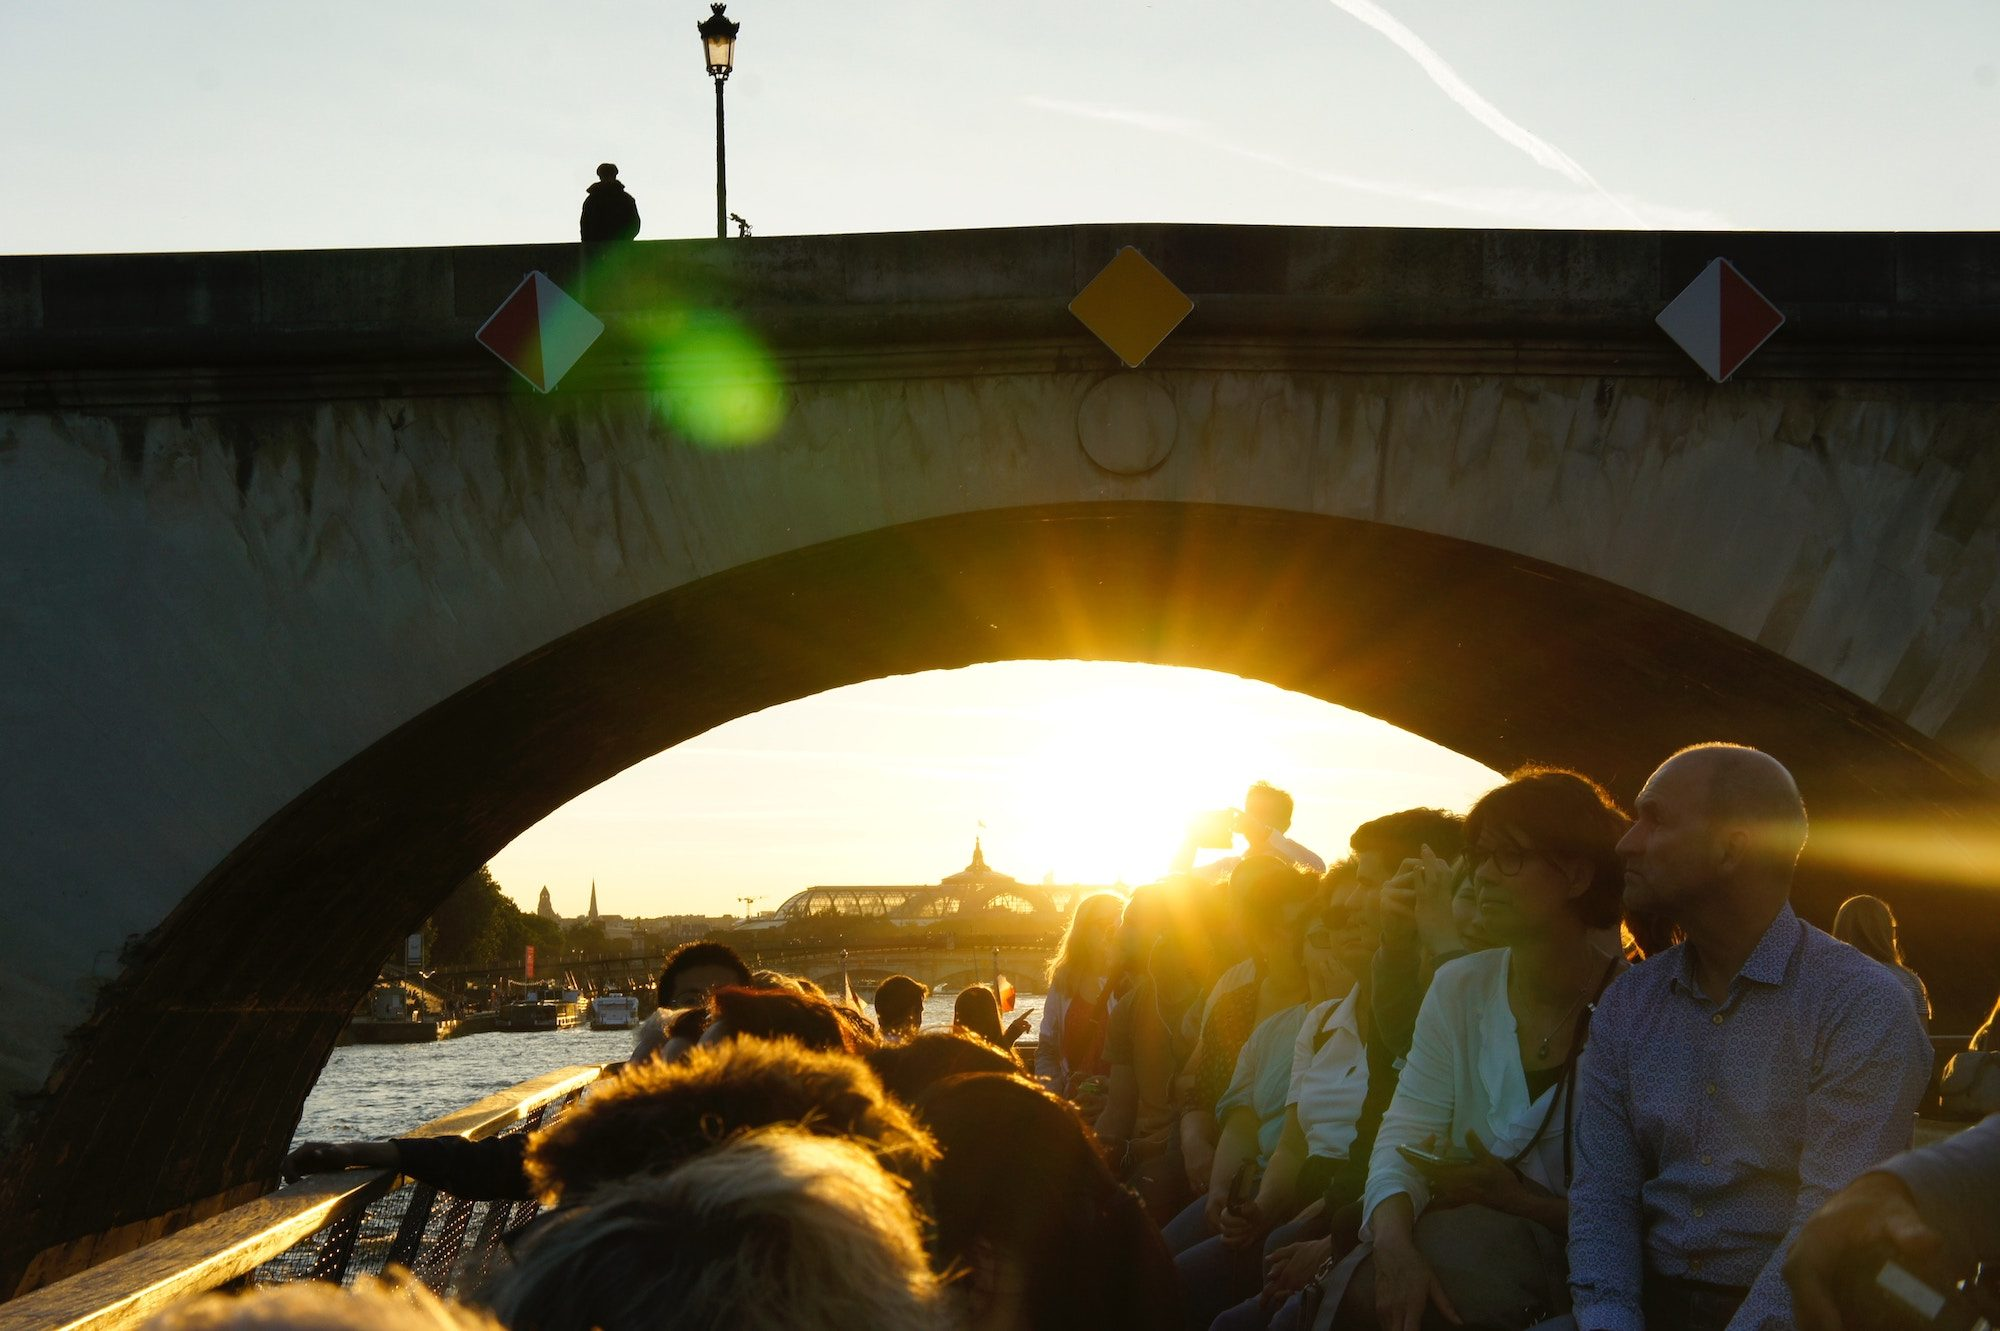 Tourists on a barge boat on the River Seine as the sun sets above the Grand Palais as seen peeping out from under one of the bridges straddling the river.